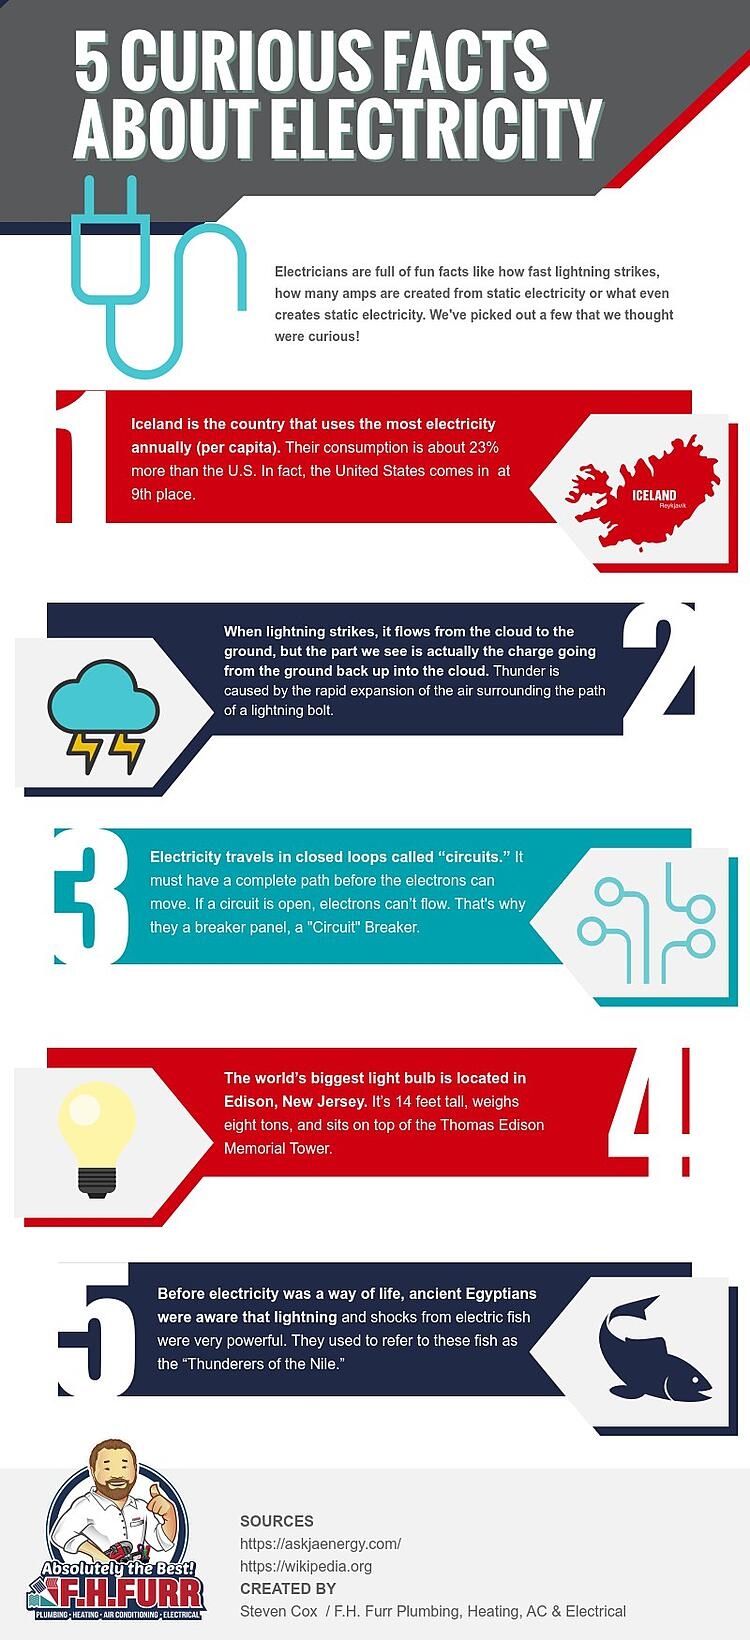 5-Curious-Facts-About-Electricity.jpg